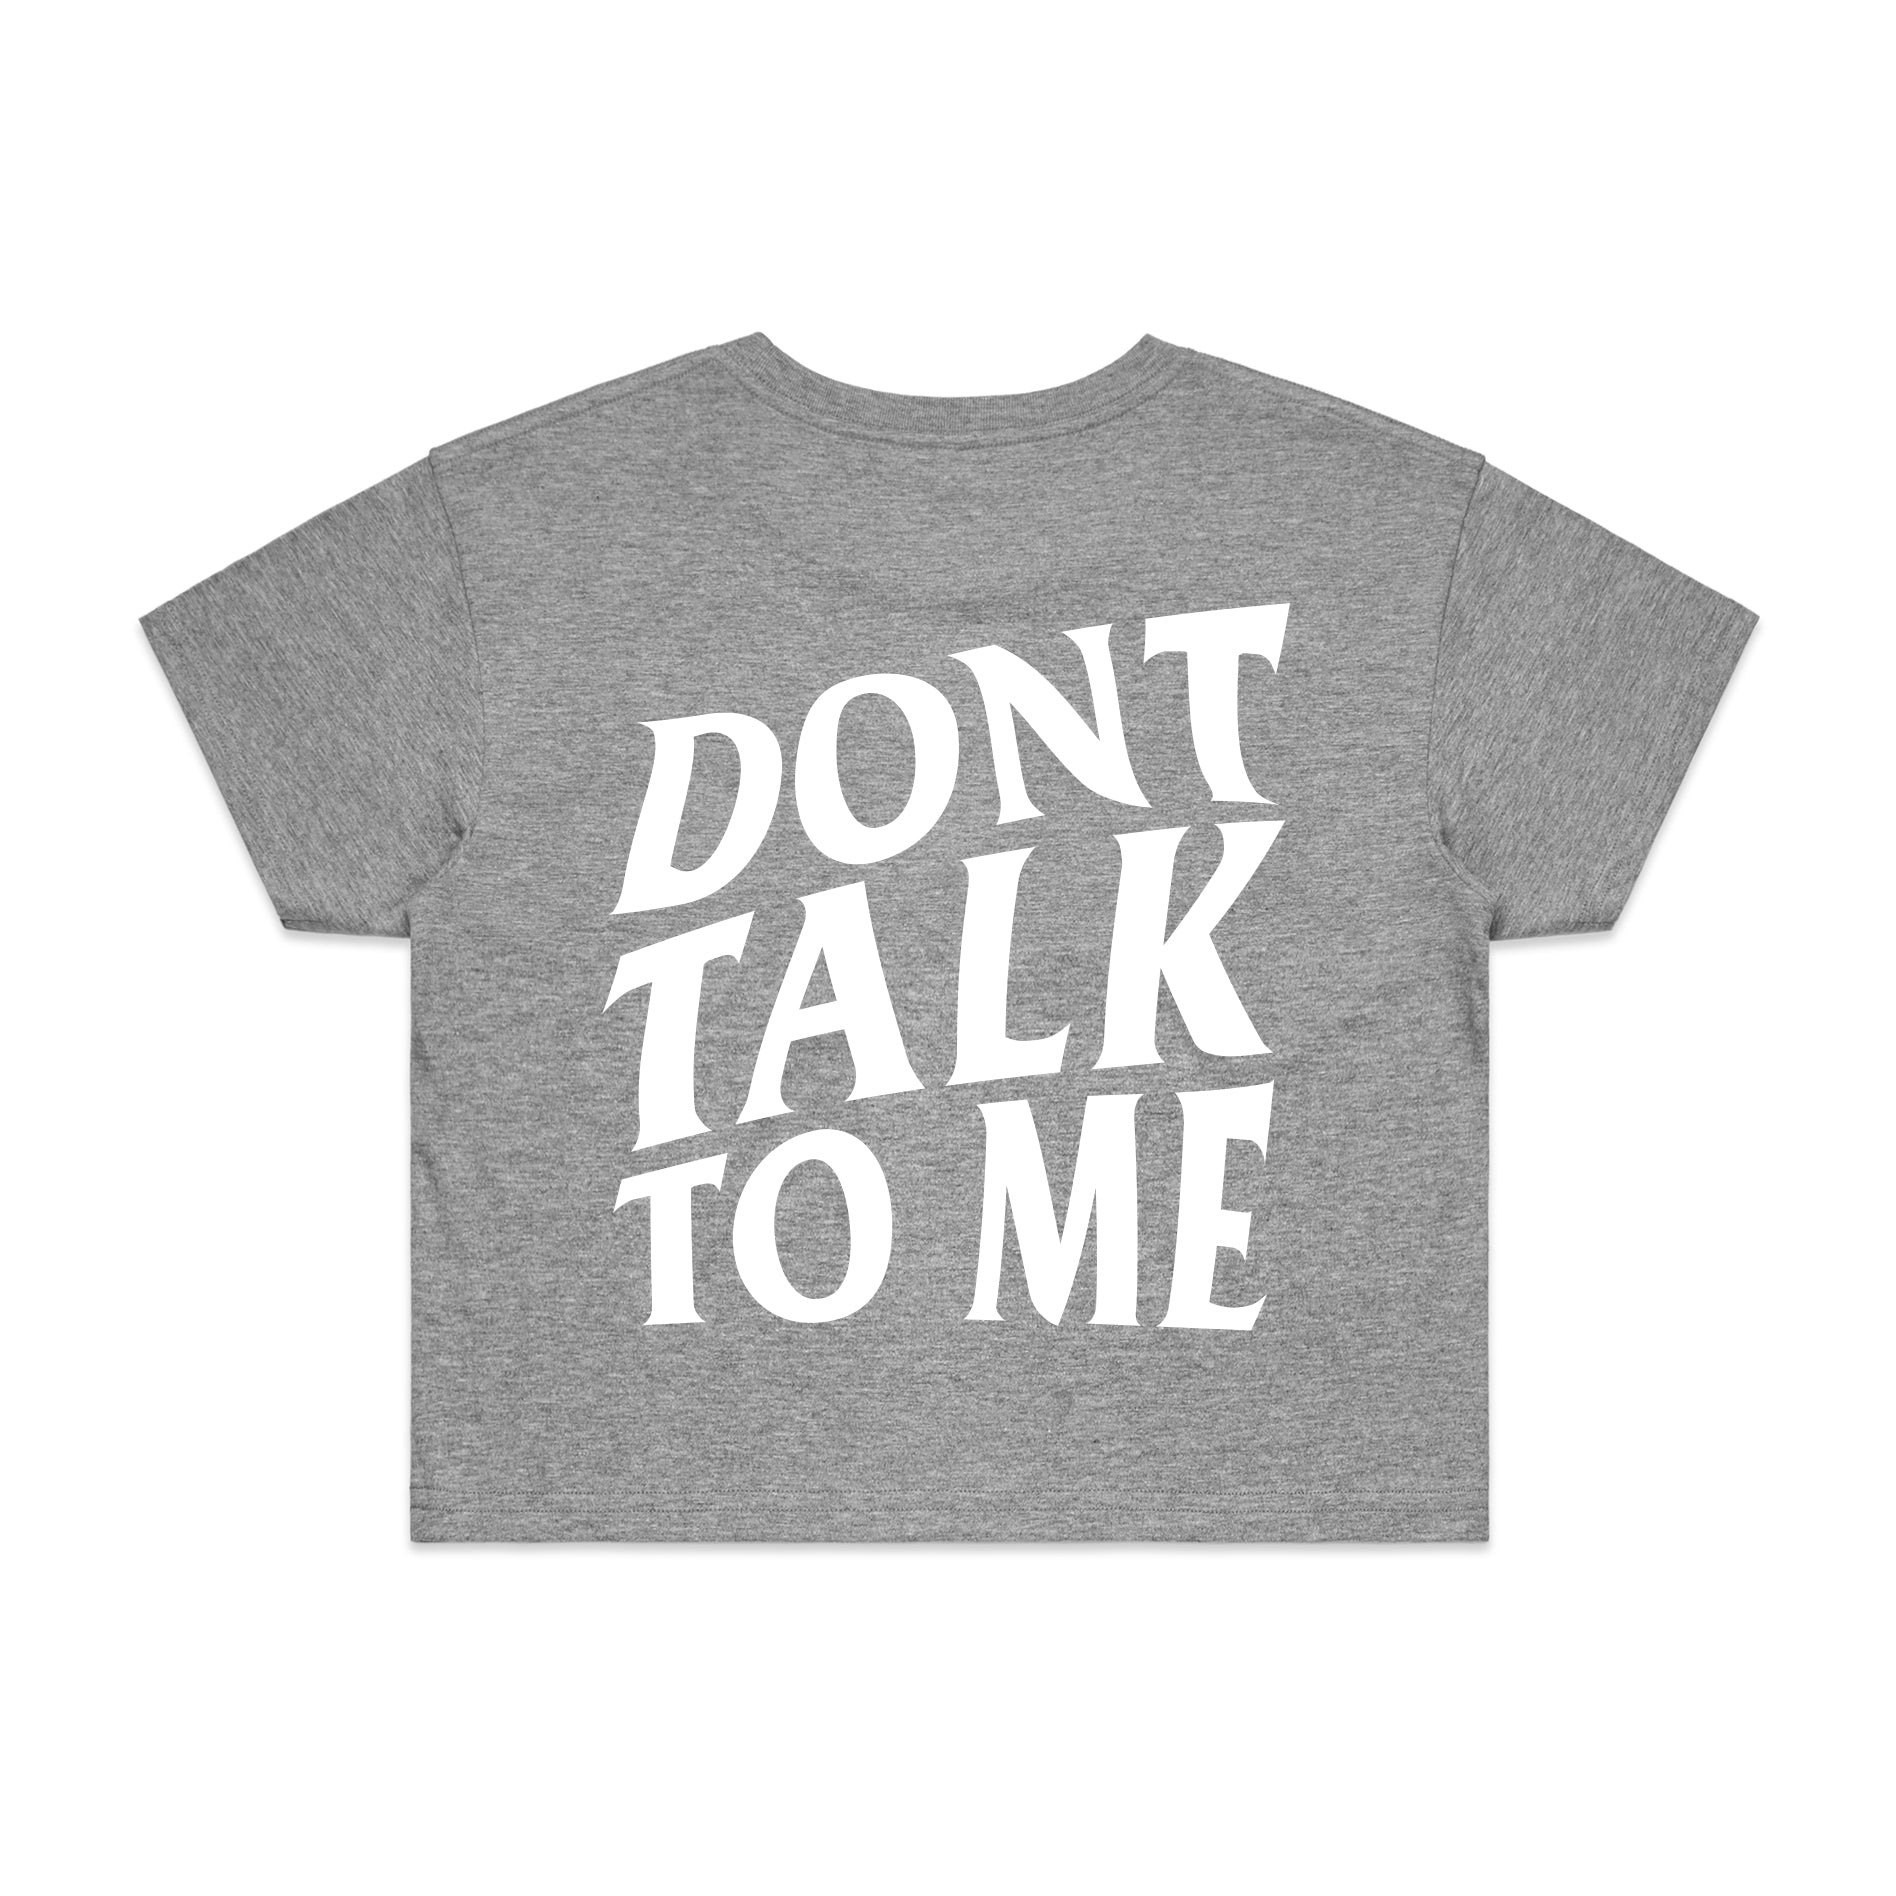 [WOMEN] Don't Talk To Me - Grey Crop Tee